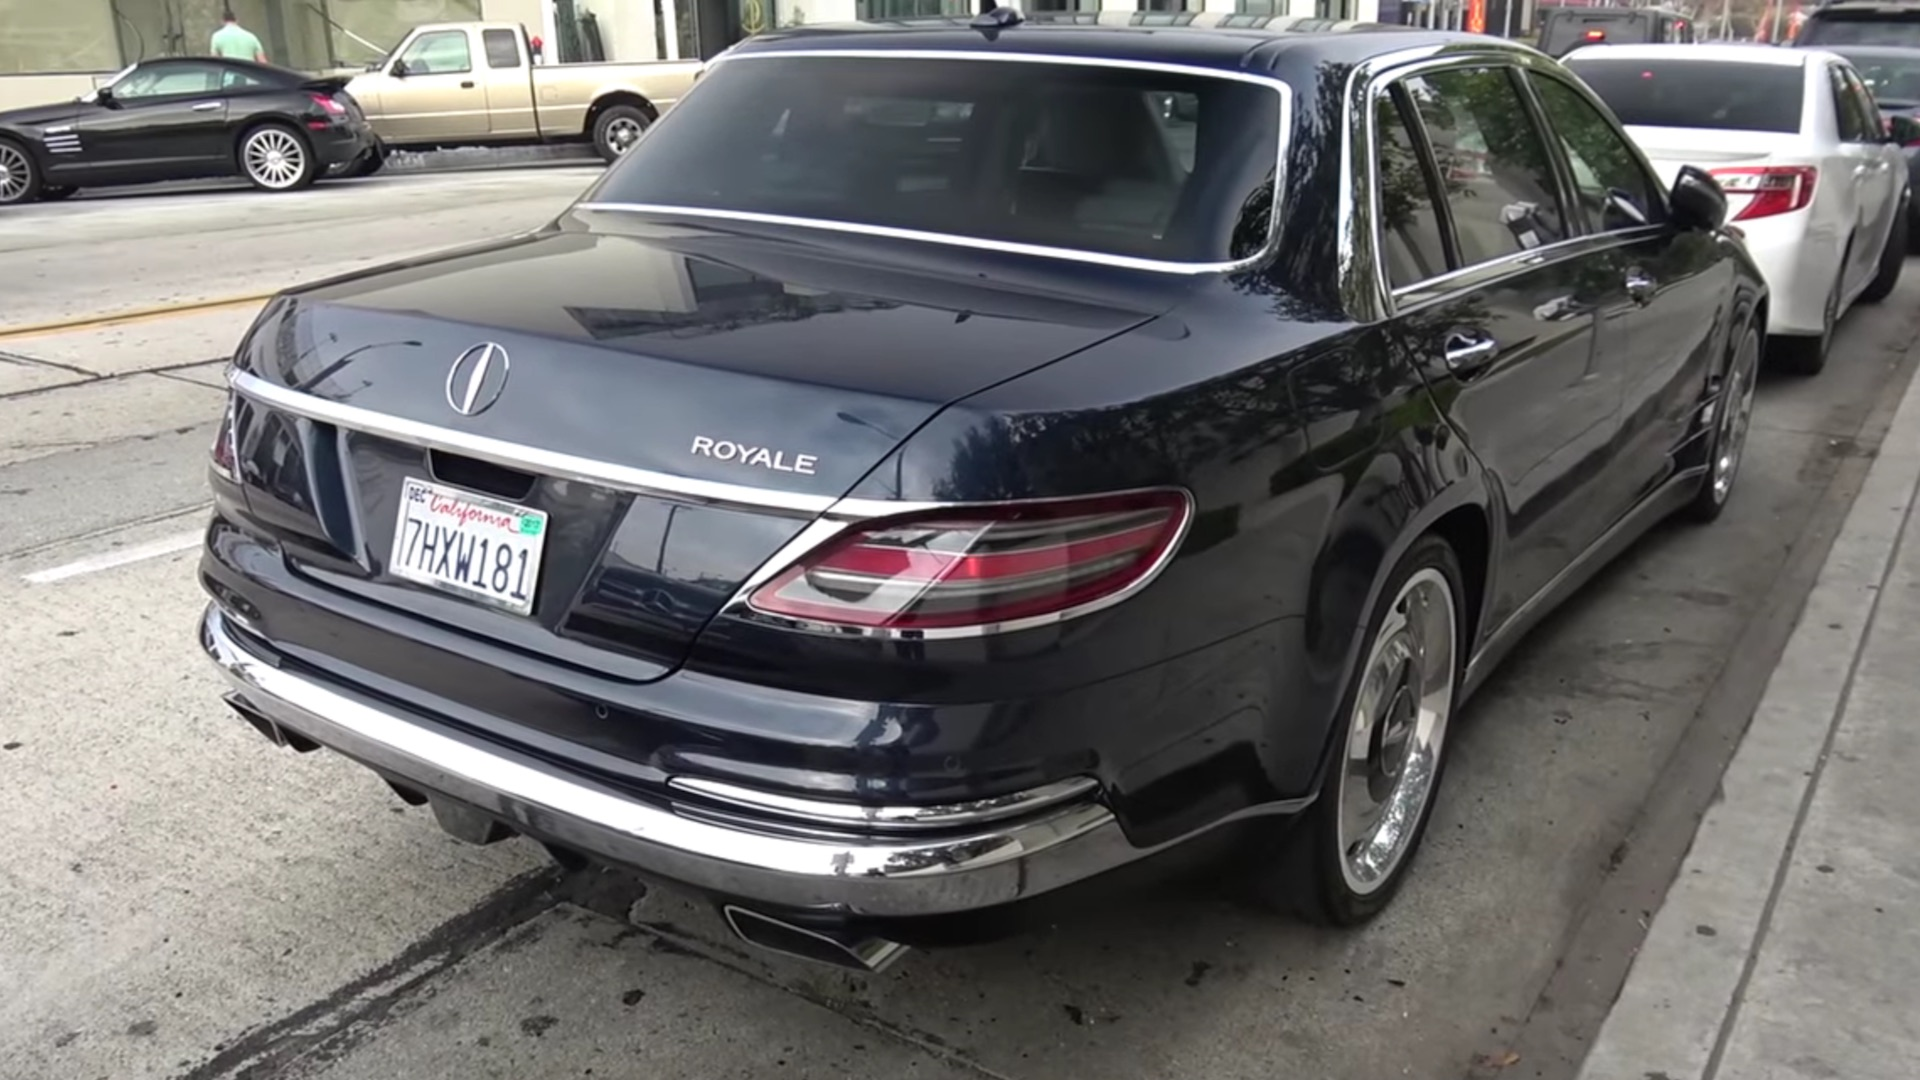 check out the mythical mercedes benz s600 royale from. Black Bedroom Furniture Sets. Home Design Ideas